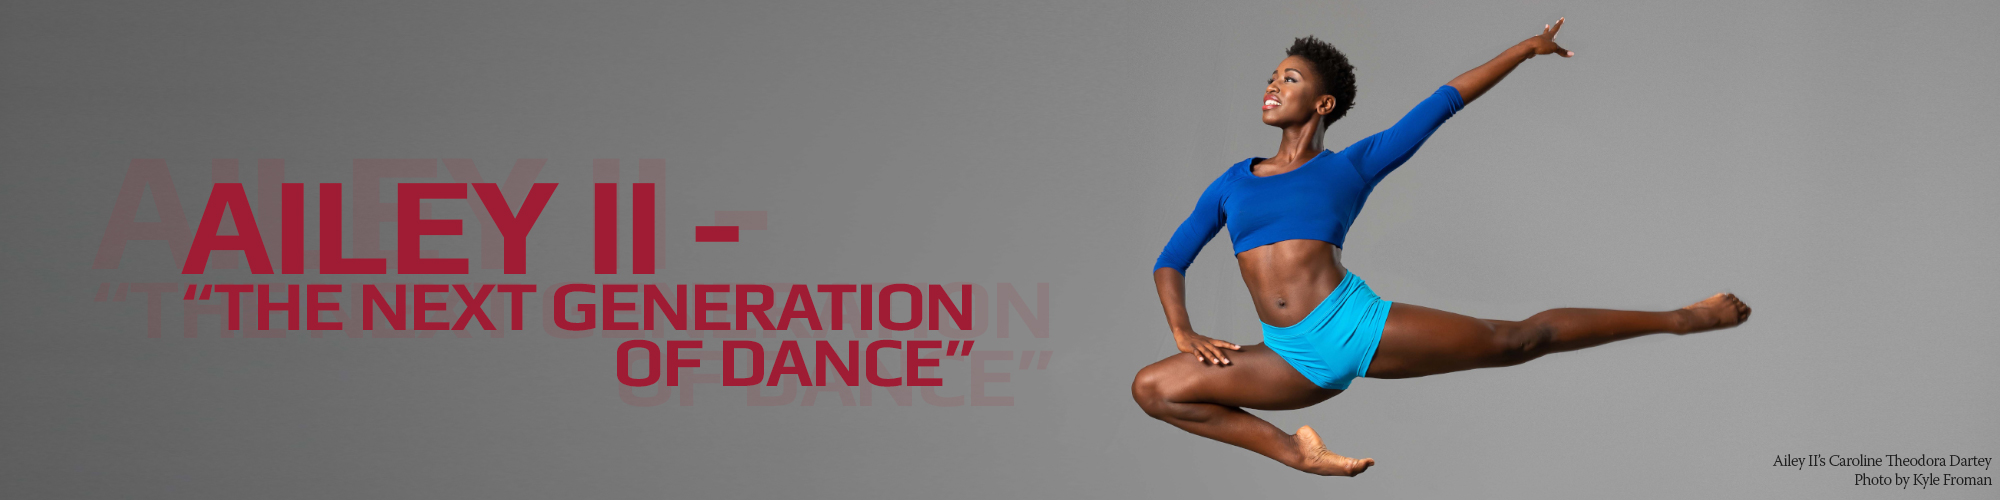 LARL-show-page-header-Ailey